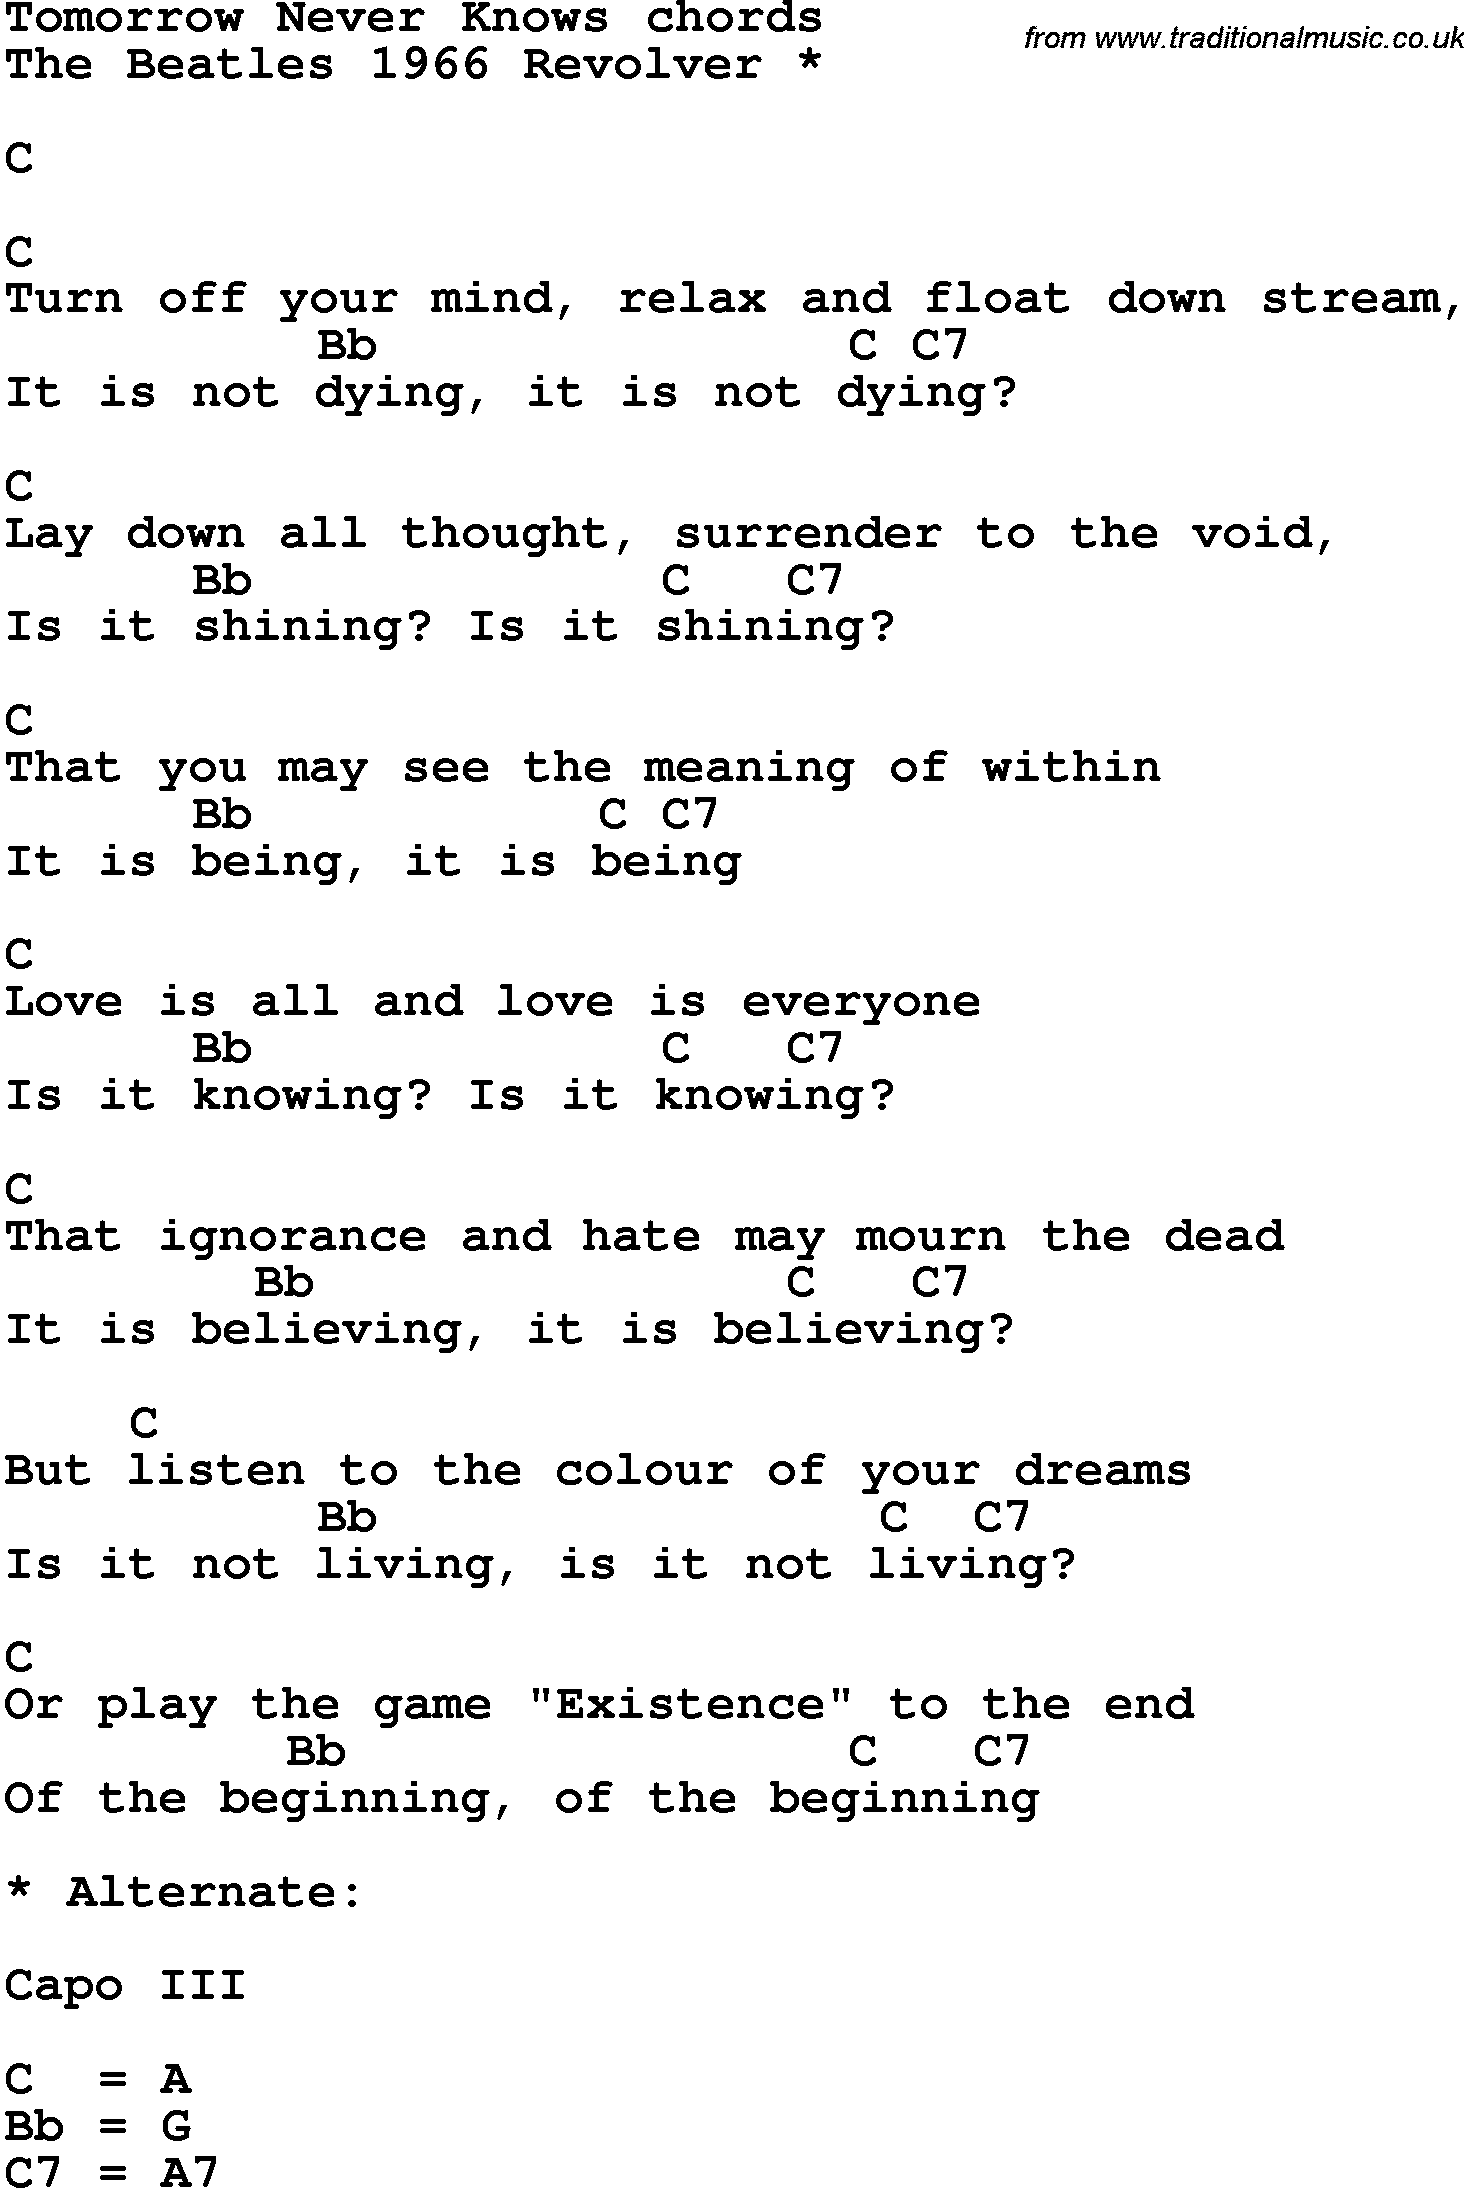 Song Lyrics With Guitar Chords For Tomorrow Never Knows Beatles